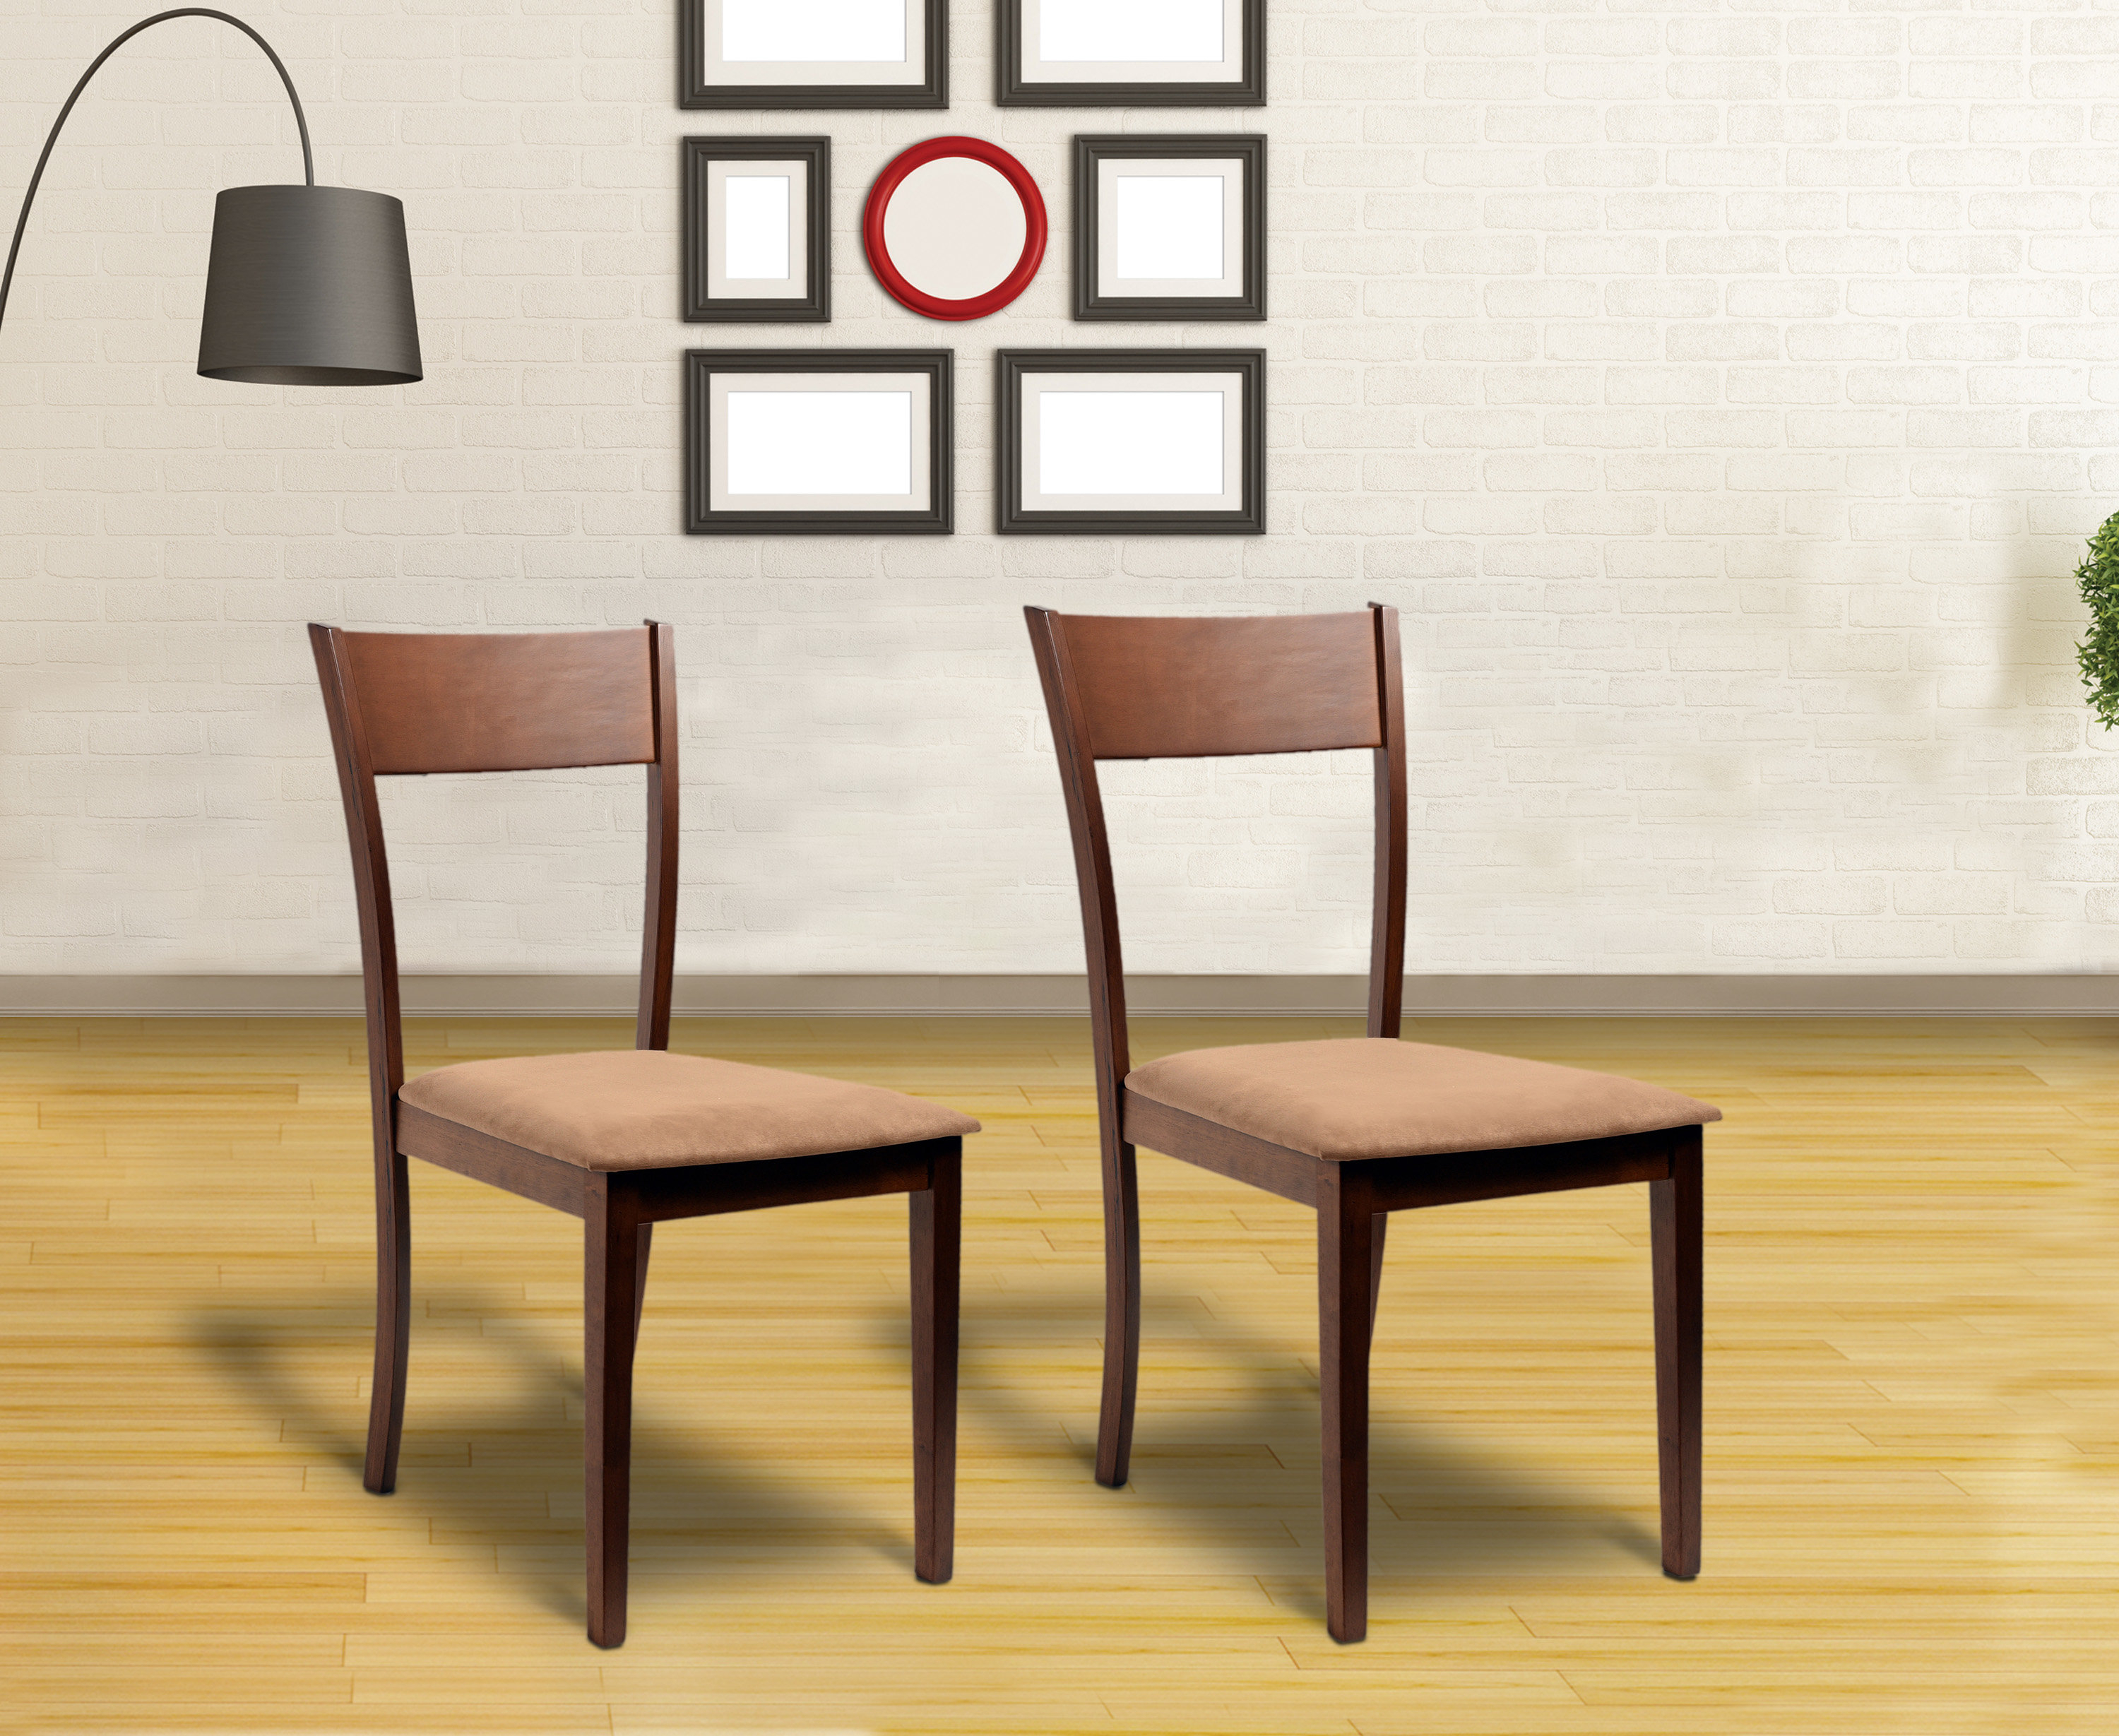 Roosevelt Upholstered Dining Chair Pertaining To Best And Newest Hanska Wooden 5 Piece Counter Height Dining Table Sets (Set Of 5) (View 18 of 20)